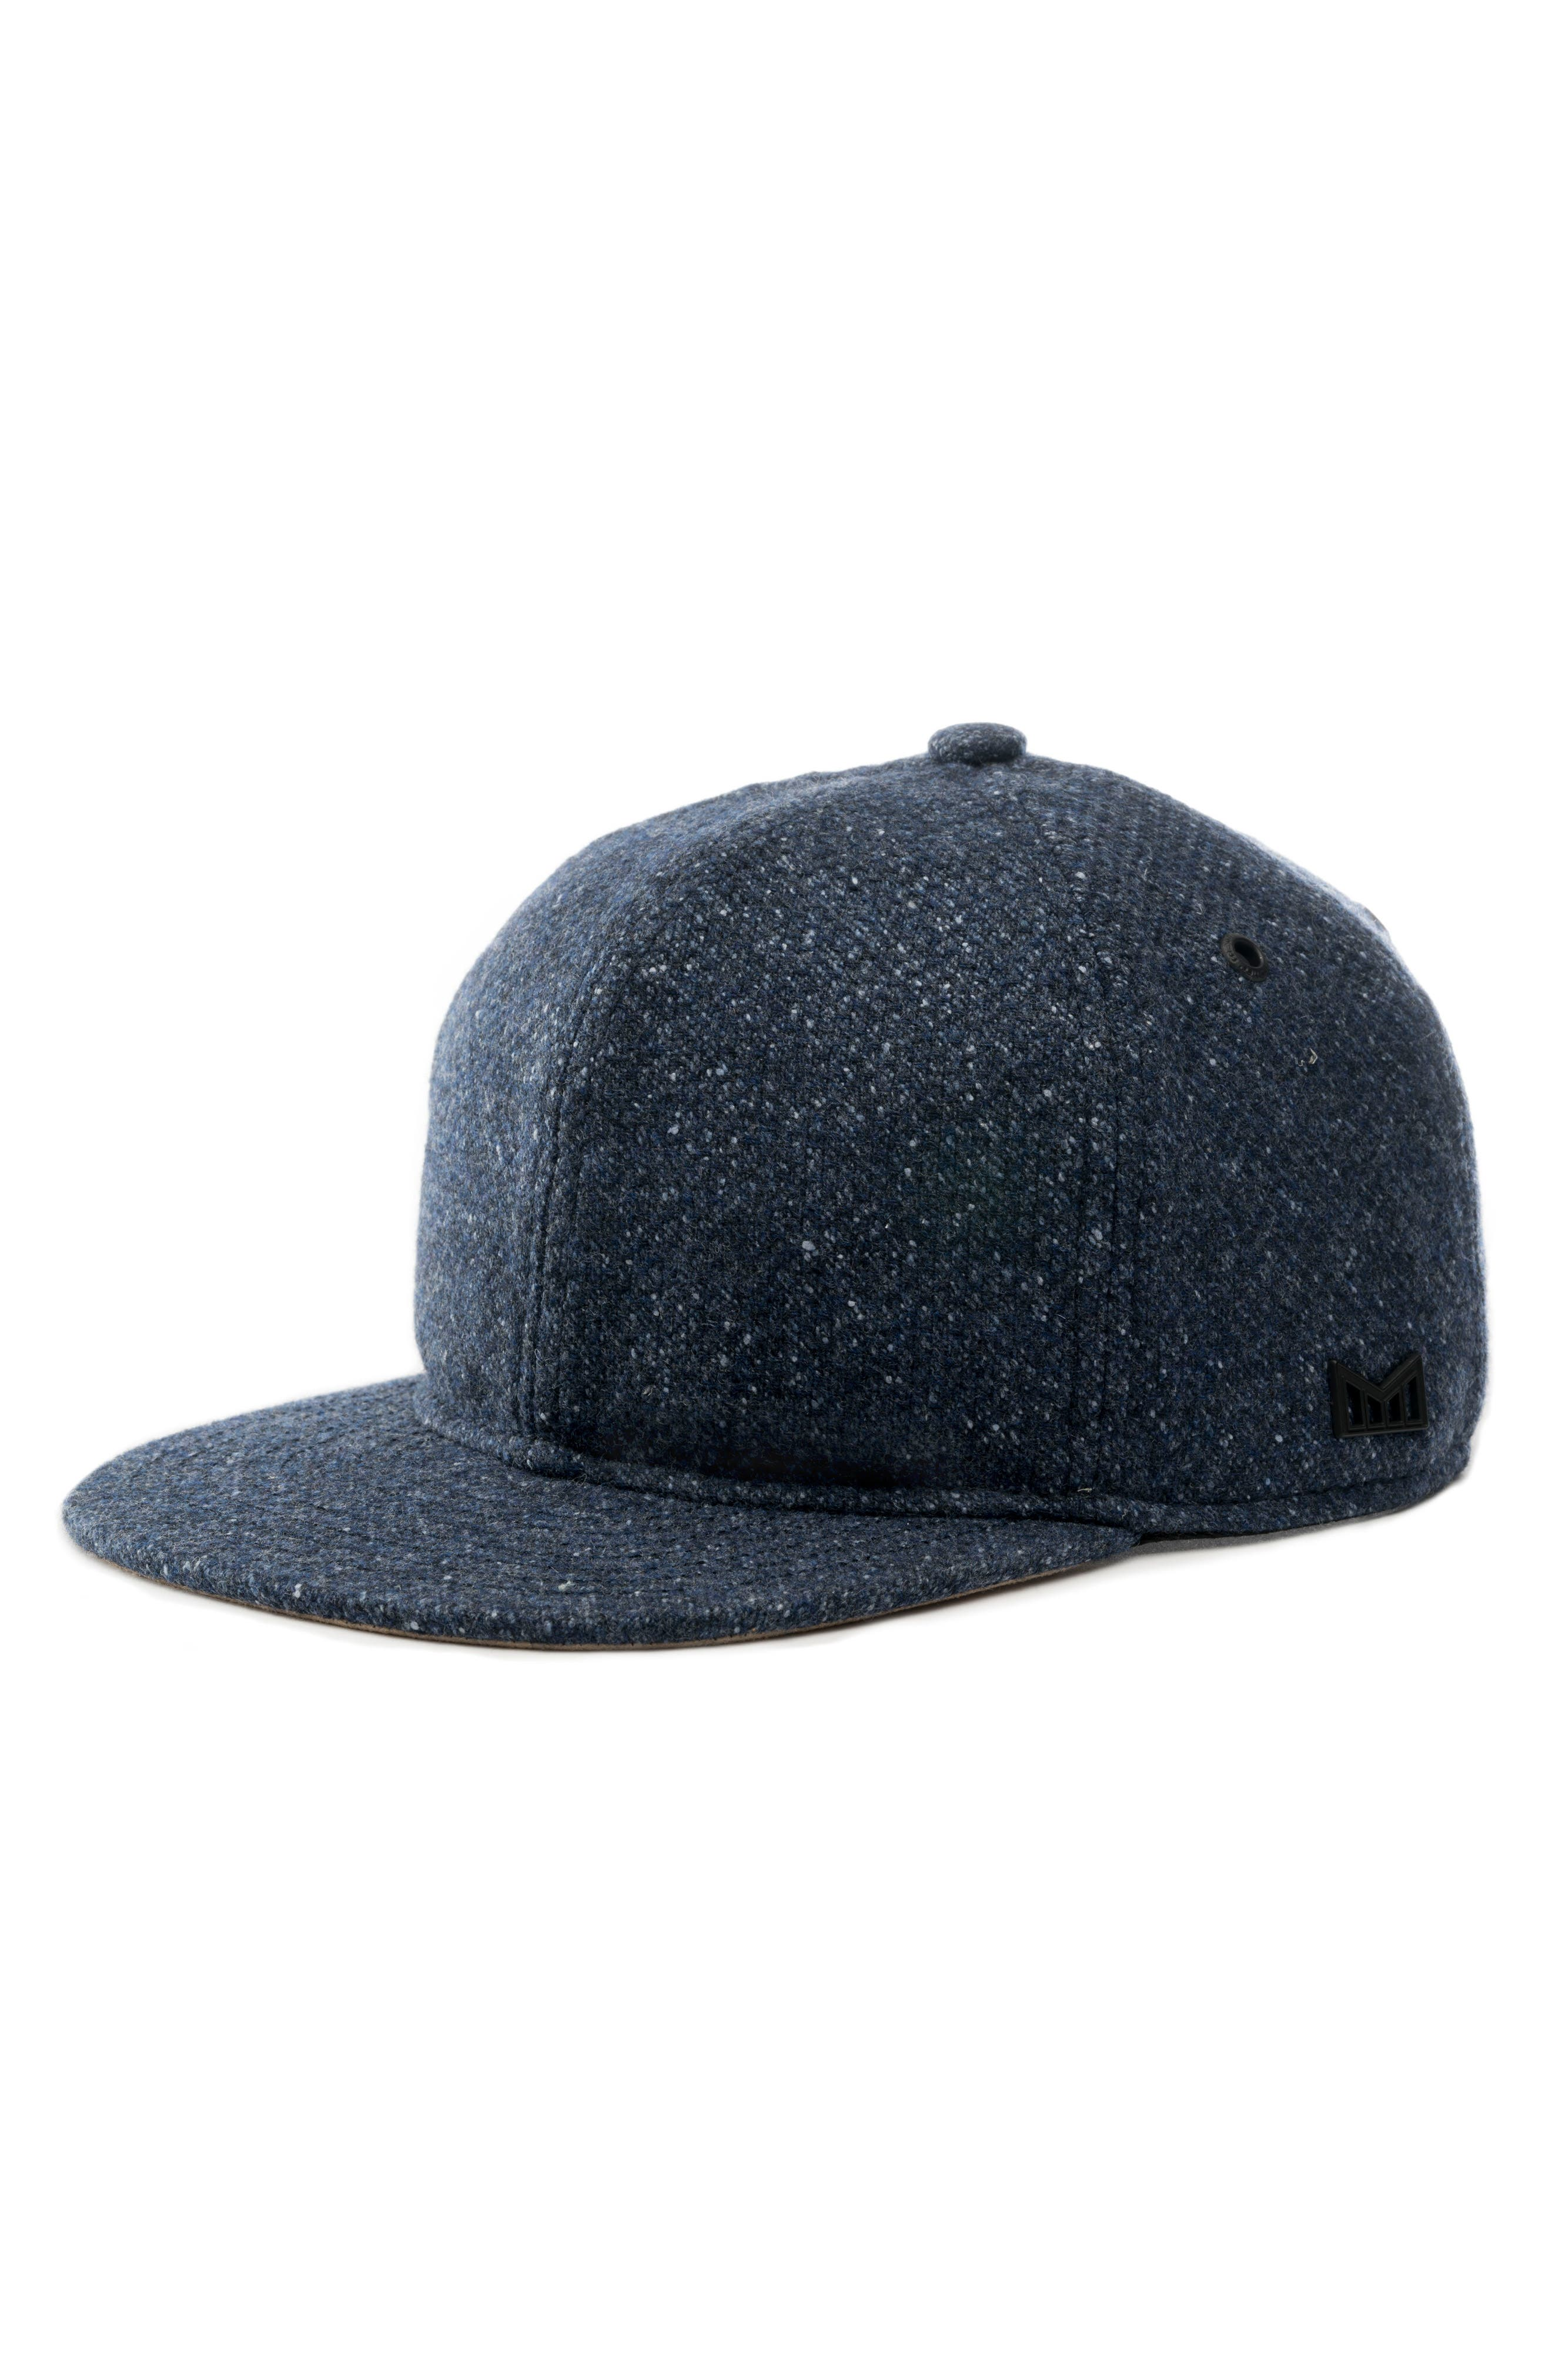 Kingpin Ball Cap,                             Main thumbnail 1, color,                             BLUE